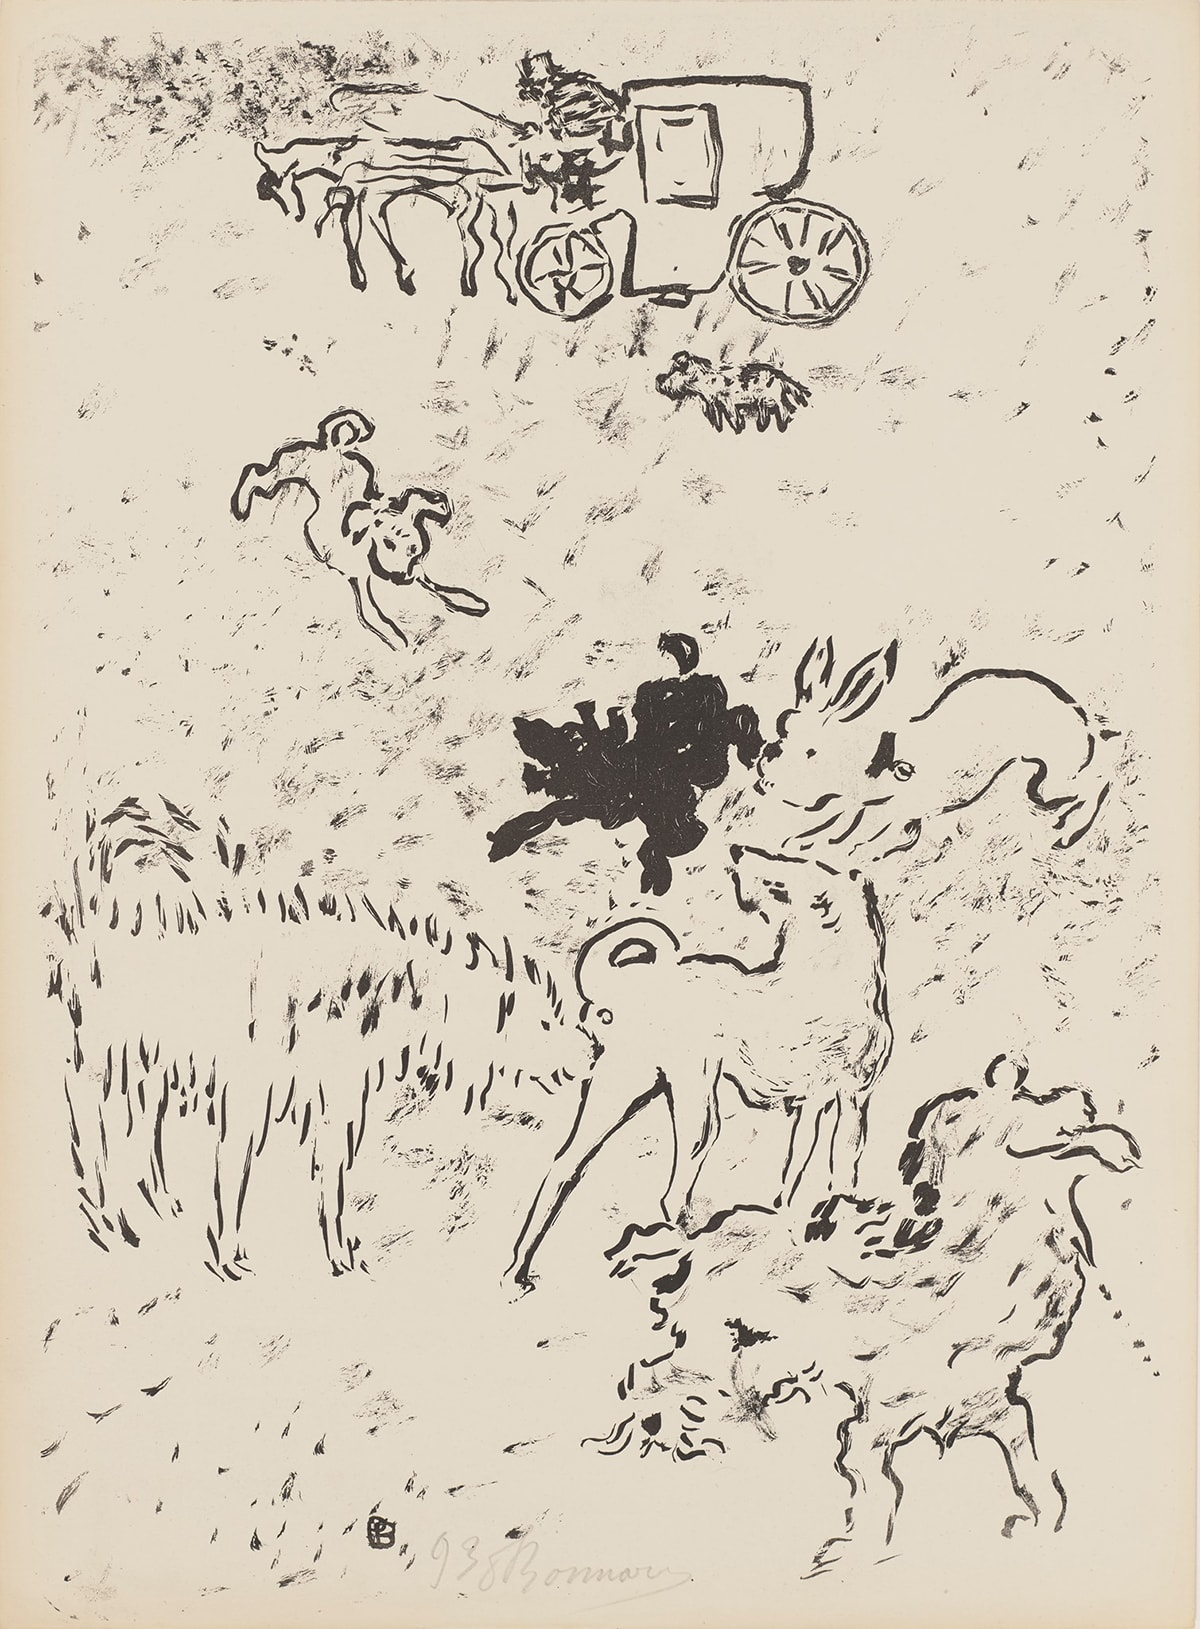 """Image description: Dogs, Pierre Bonnard, lithograph on paper, image: 14 5/8 in x 10 1/4 in; sheet: 14 7/8 x 10 15/16 inches. A portrait-oriented work featuring seven dogs engaged in different canine social activities and a horse and carriage in the distance. The bottom half of the scene contains five of the dogs, each breed and type depicted in black outline. At lower right, a scruffy coated dog with a beard lifts a hind leg and urinates. Above, a large dog with a shaggy coat rendered with short vertical black strokes inspects the back end of another large smoother coated dog with a pointed snout. At center, a small black dog crouches and looks left next to a white outlined dog that resembles a rabbit with its long ears flying back and its back rounded as if in the act of pouncing. In the upper half of the print, a small white dog at left, gives a play bow to the small black dog. Its rump is raised with his head is low with front paws spread wide. At top center, a horse and closed carriage with a driver are seen at a distance. A small spotted dog walks next to the carriage and mimics the hunched, posture of both the horse and the top hatted driver. The background is flecked and dappled with black marks and smudges giving texture. At bottom center is the artist's signature in pencil. Above it at left, is a """"P"""" overlapping a """"B"""" in black."""